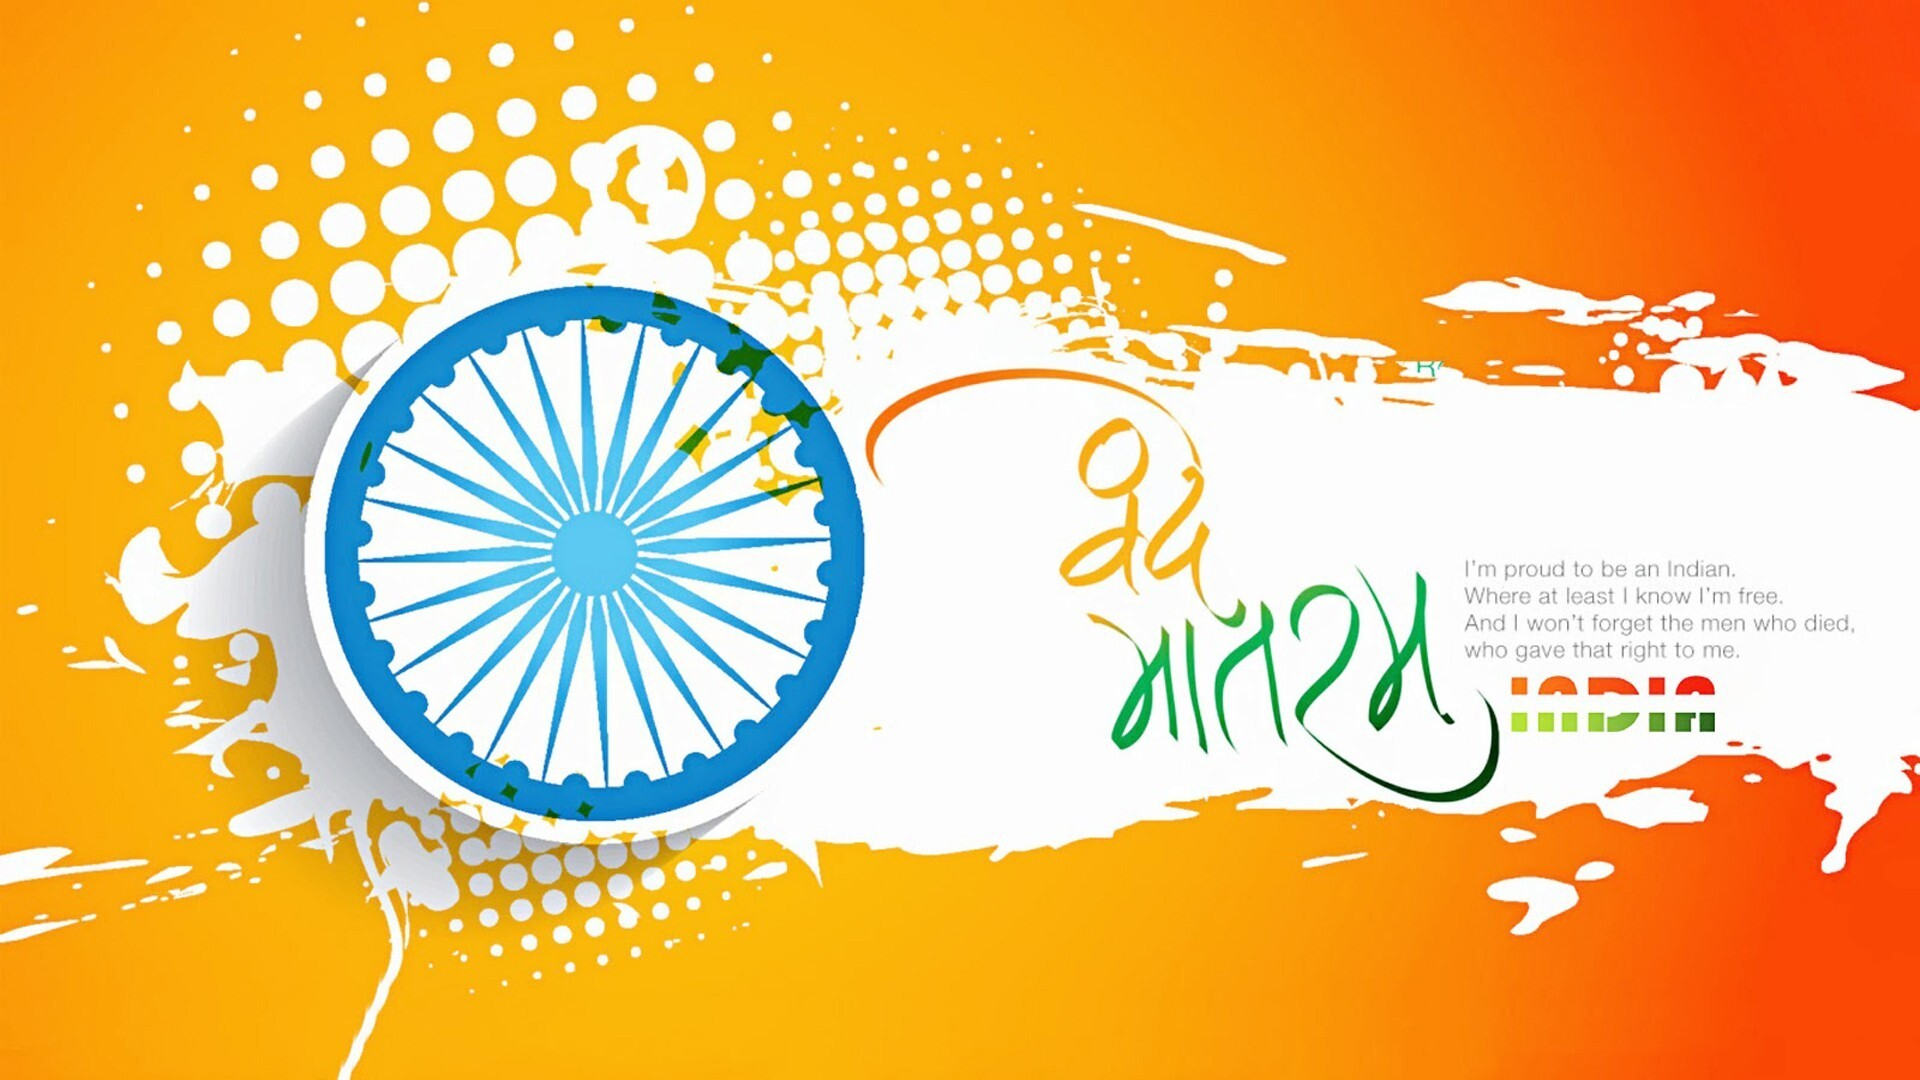 Wallpaper download republic day - Republic Day Wallpapers